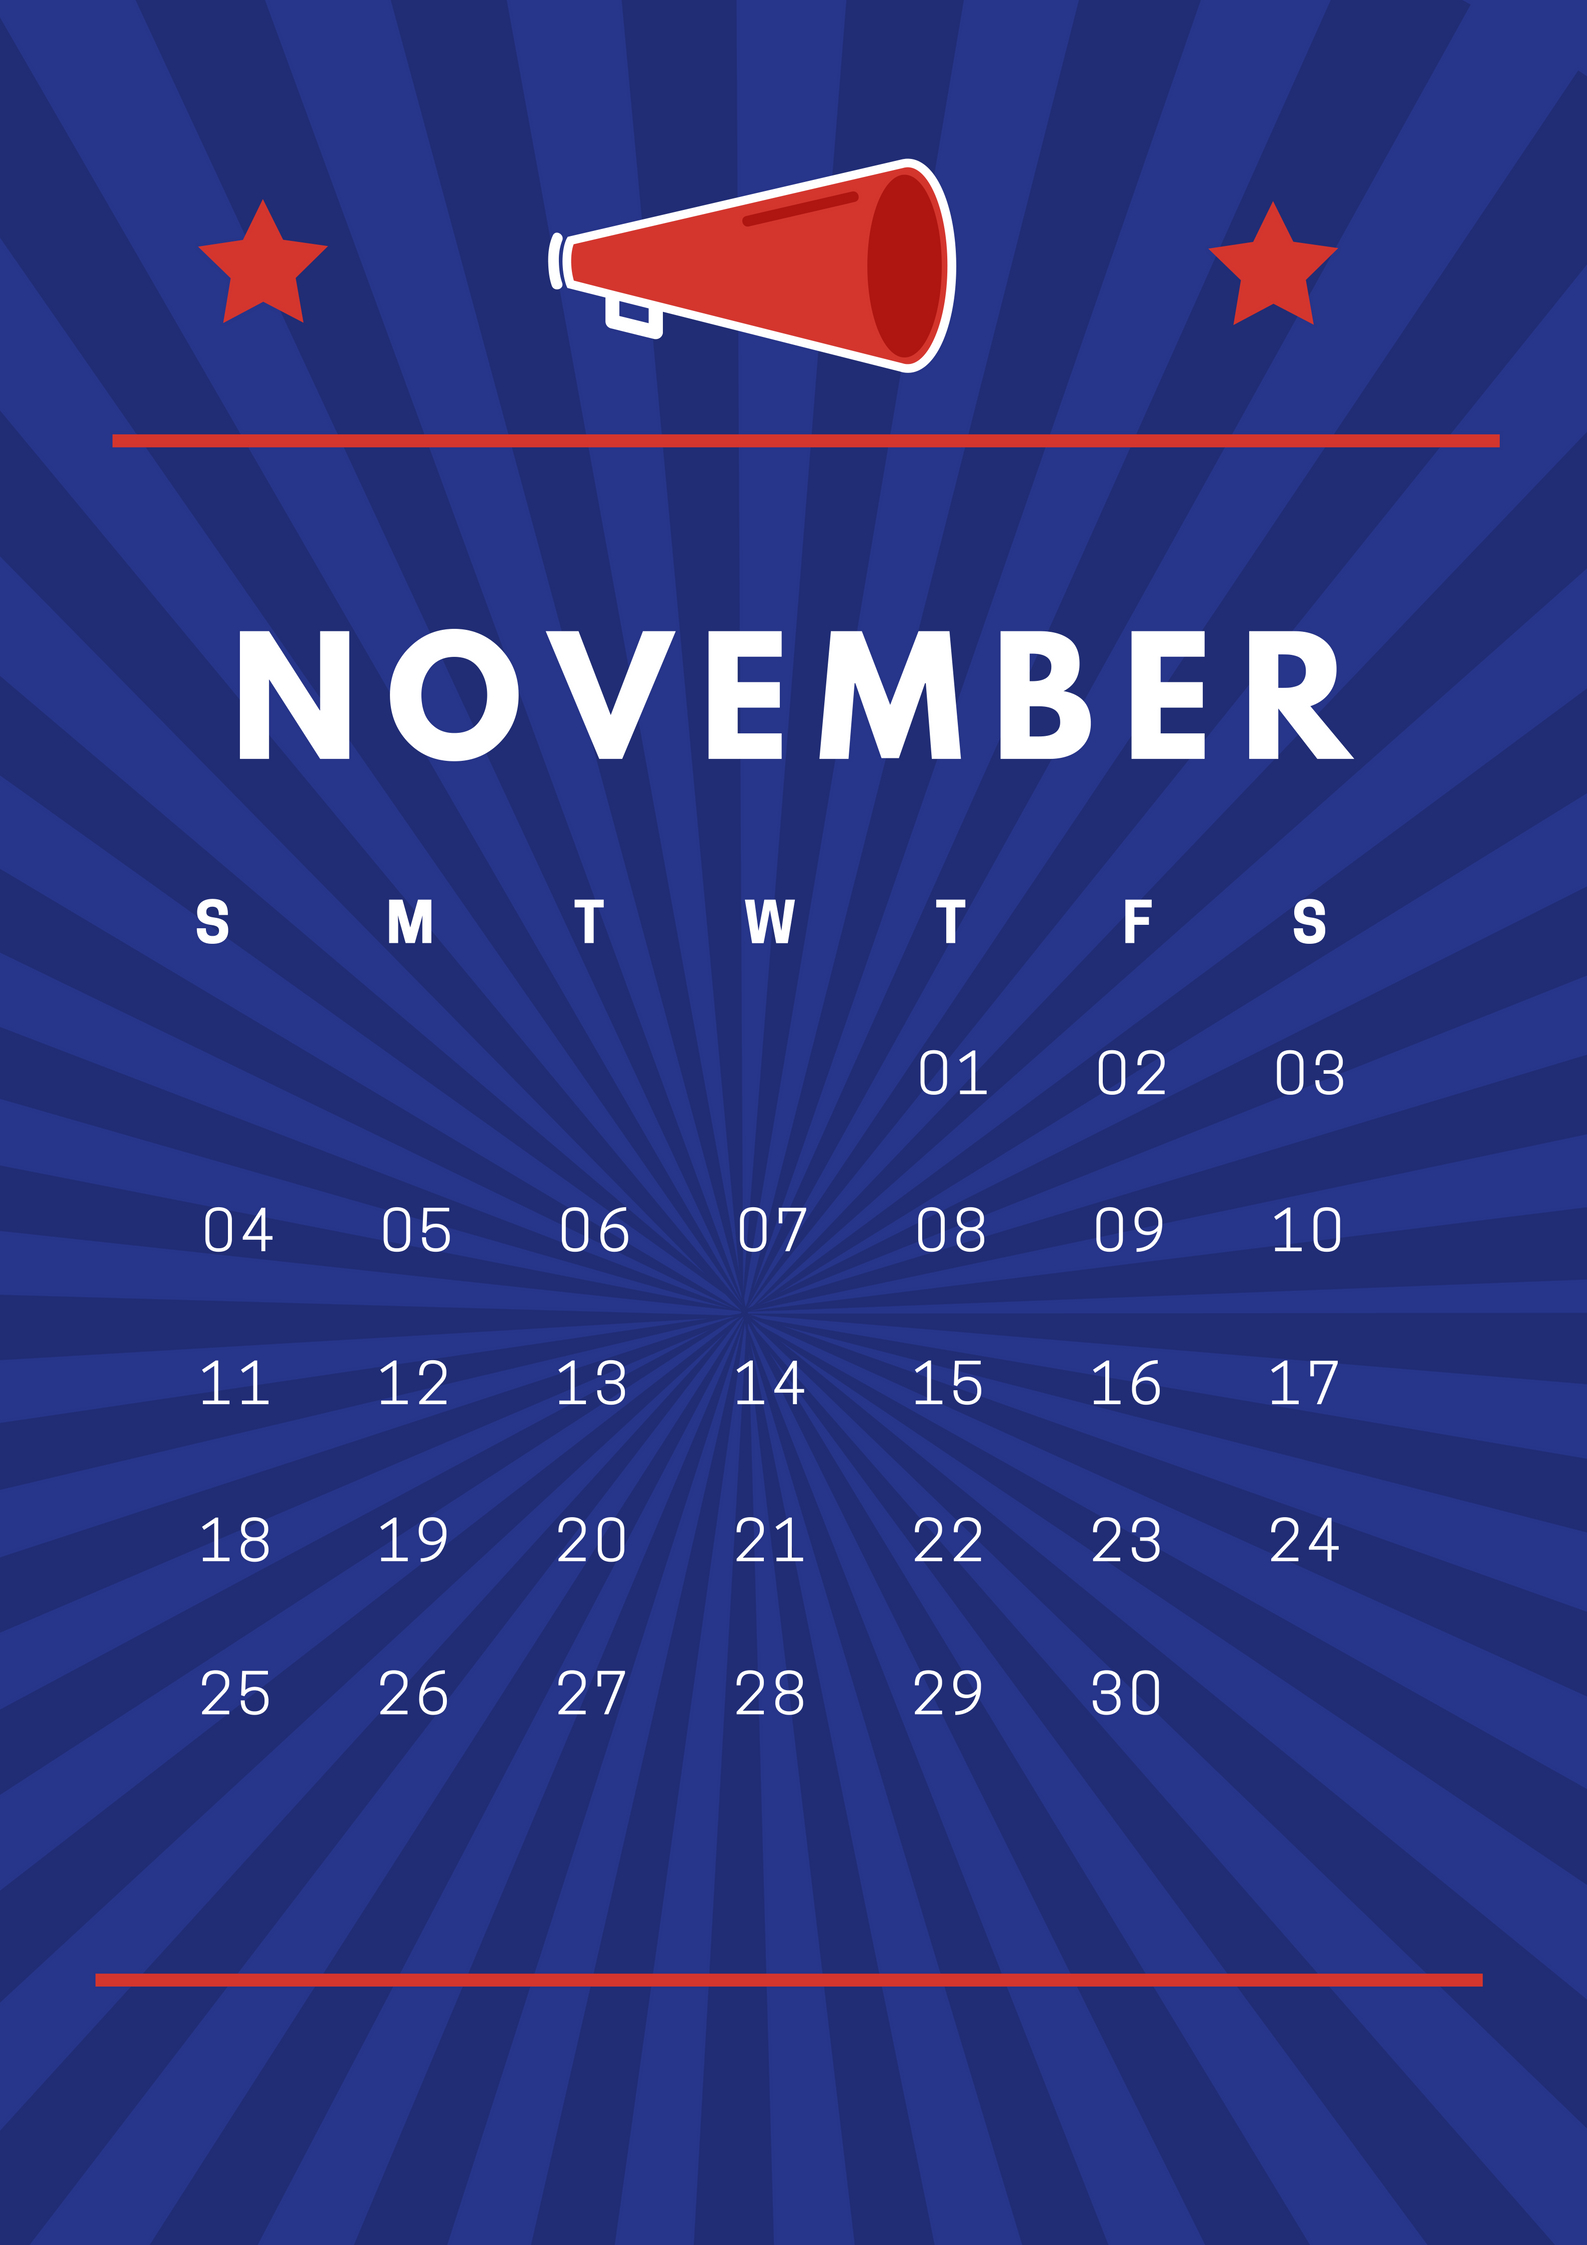 Cool November 2018 iPhone HD Calendar